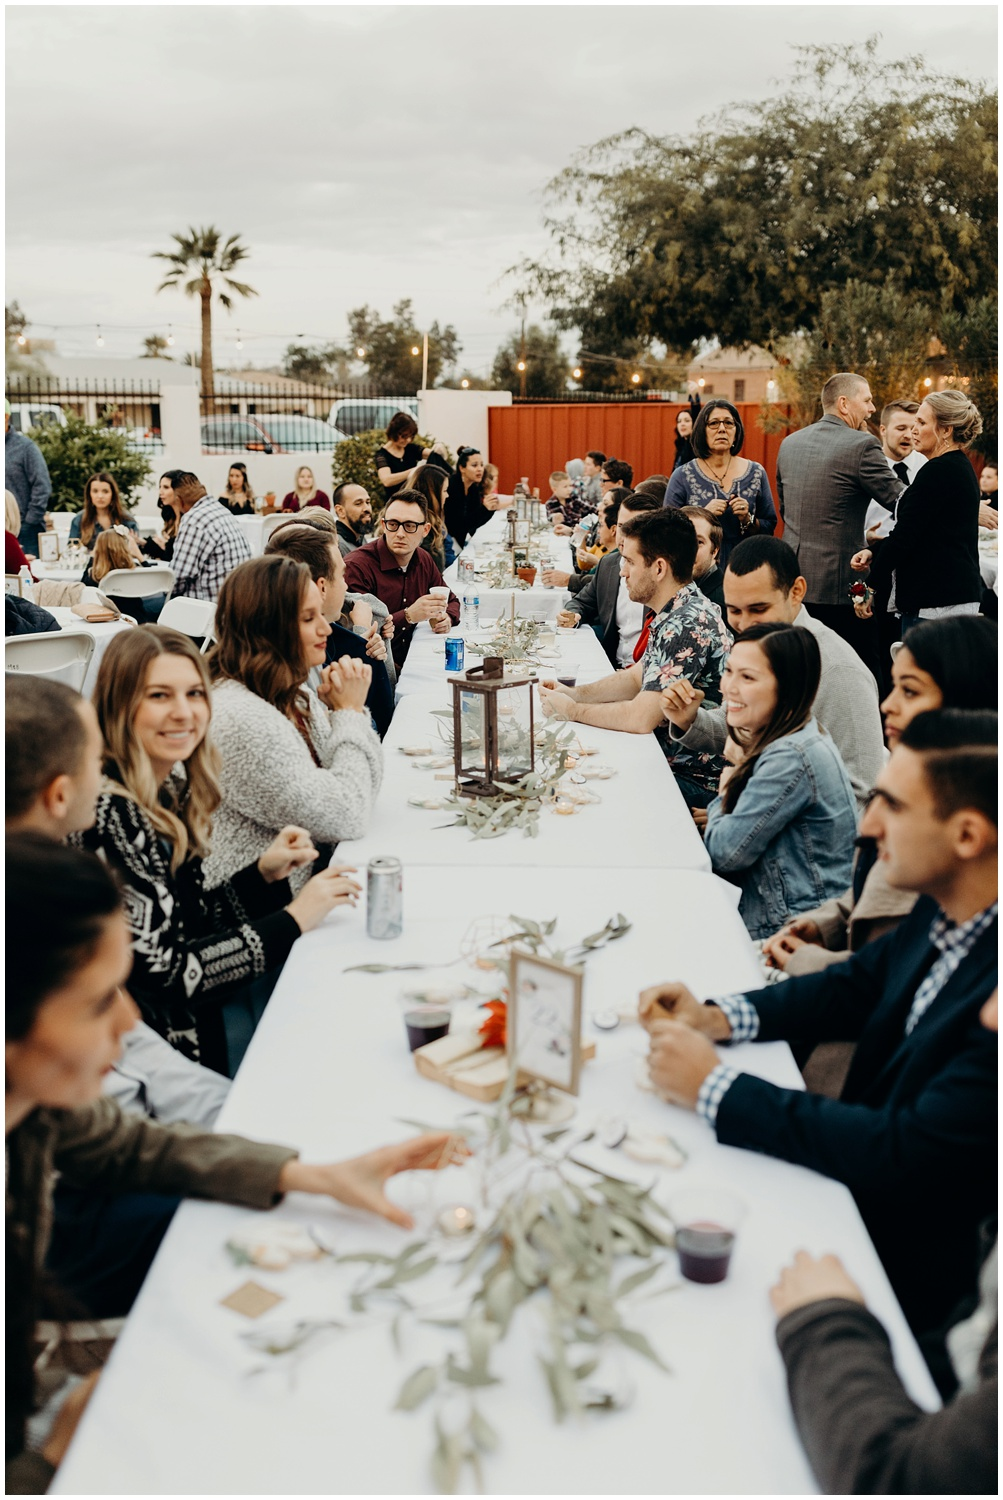 Guests gather together during the reception to share a meal.